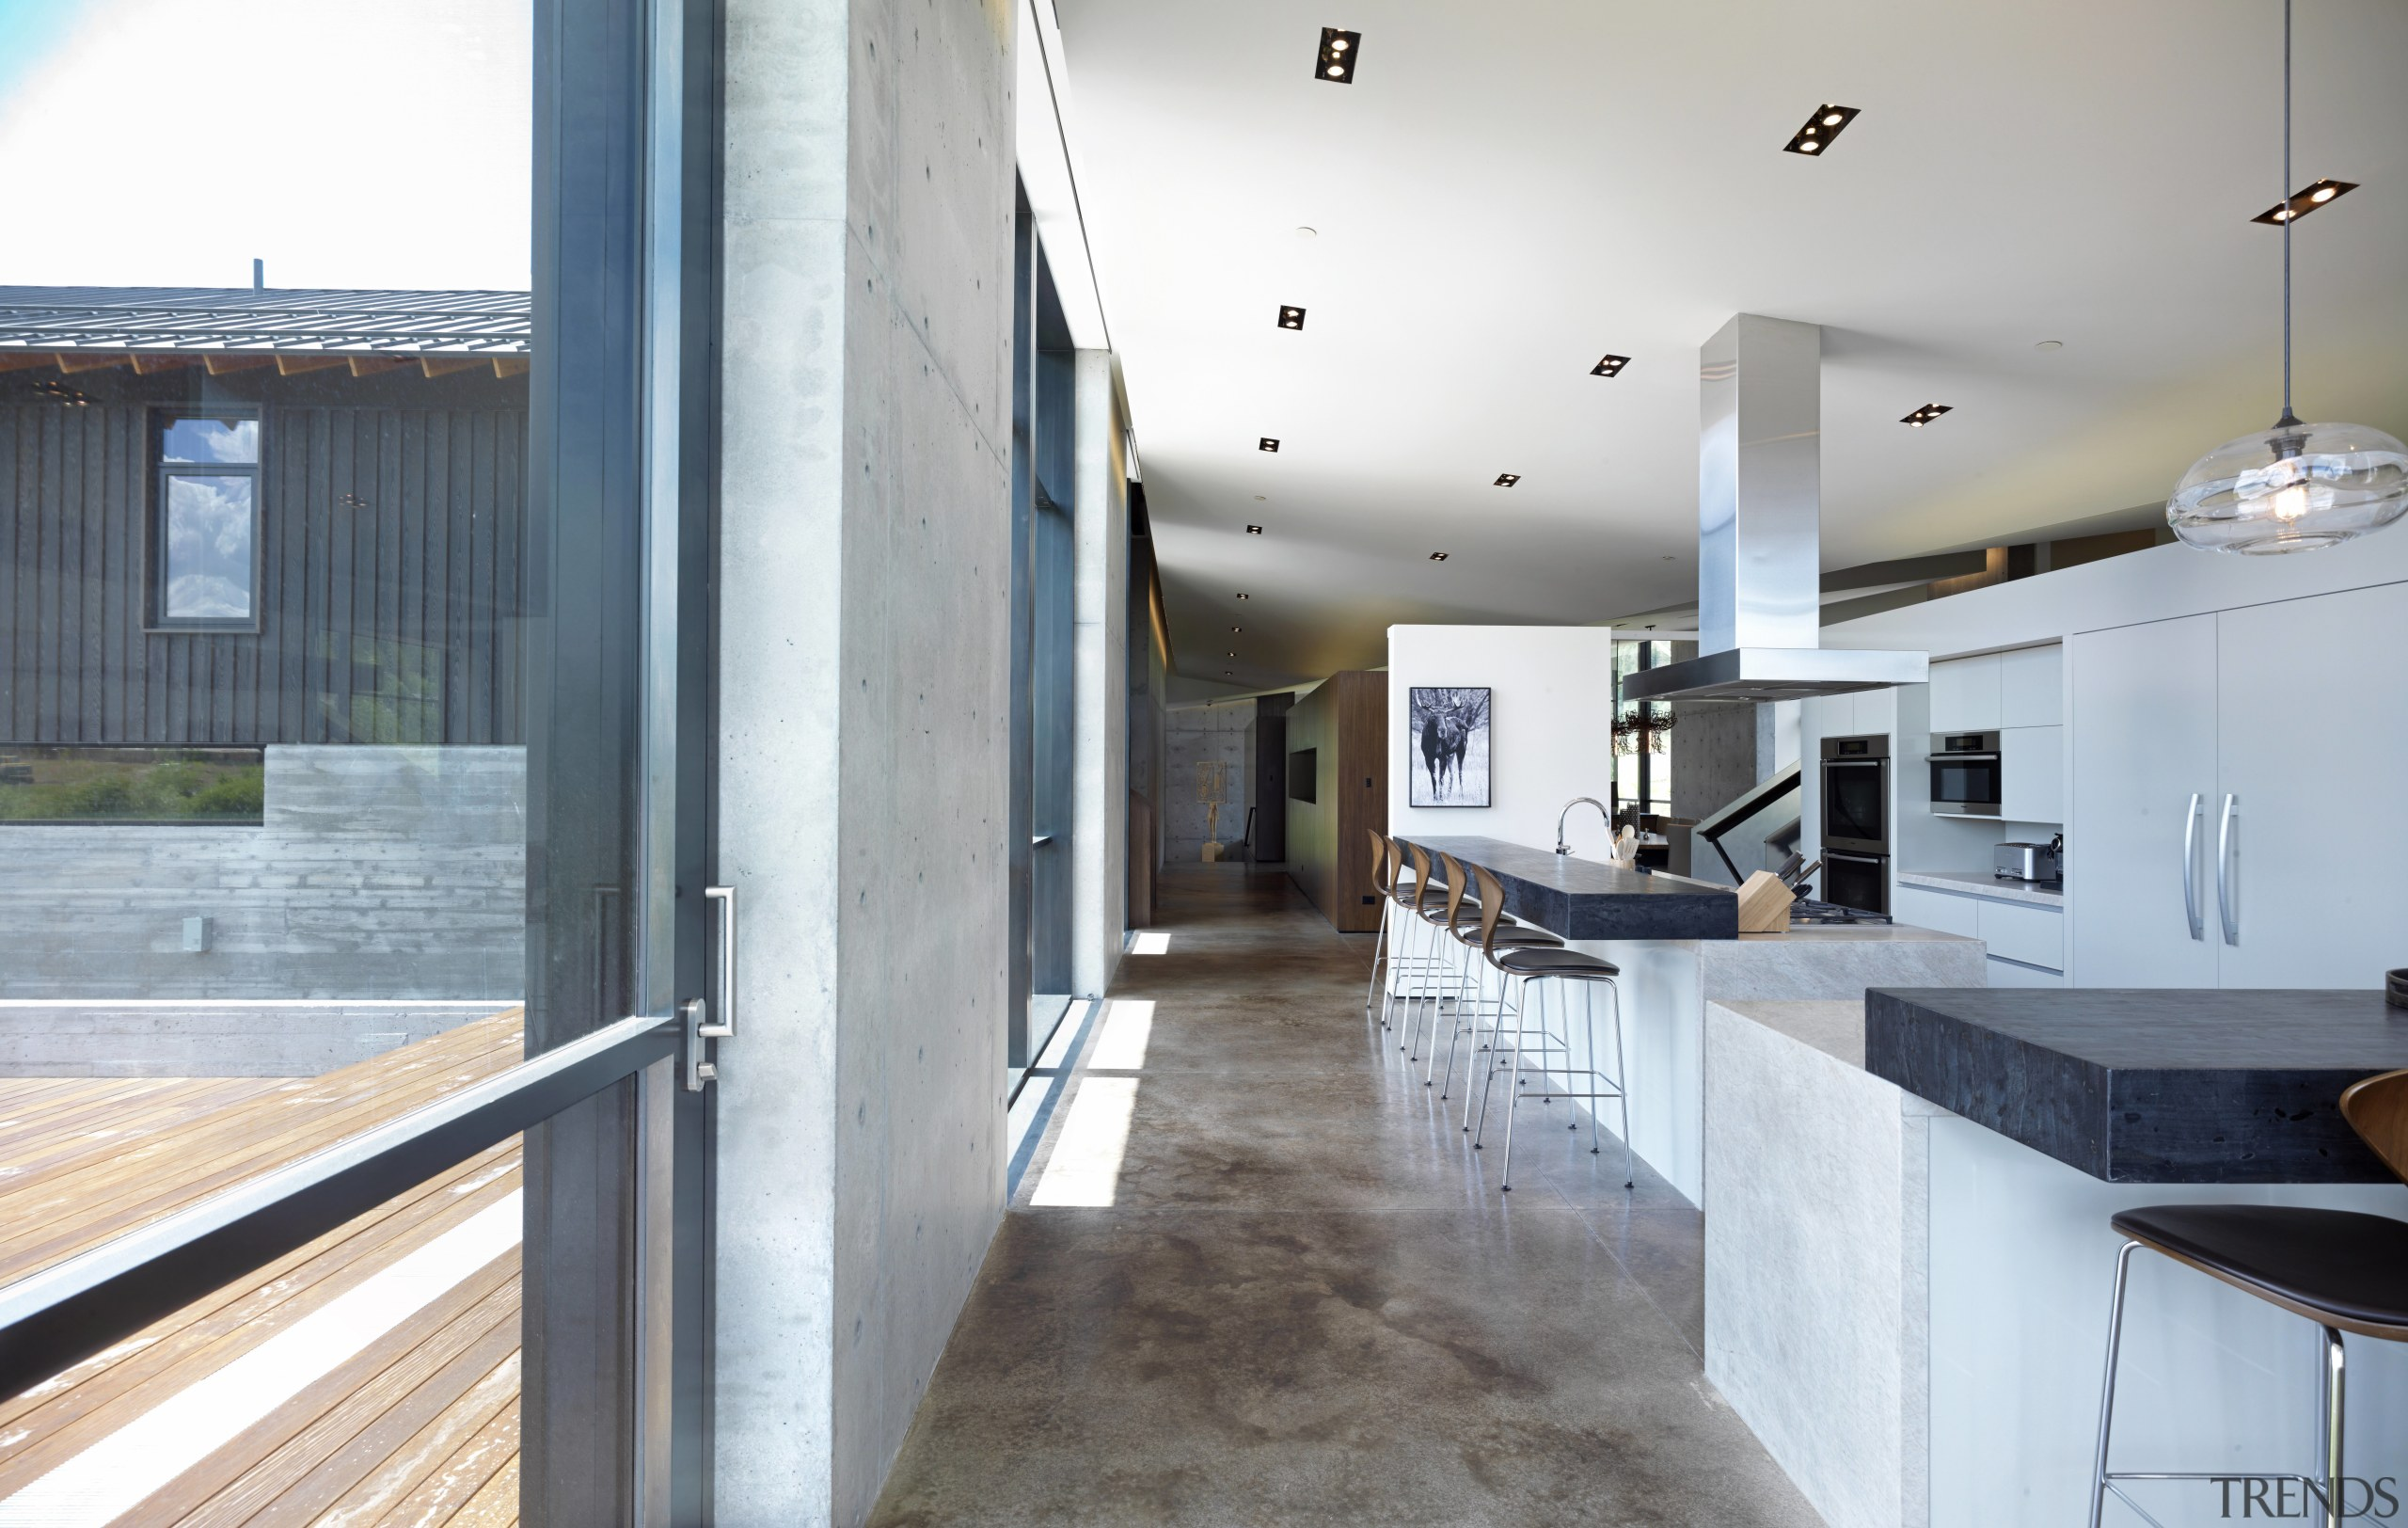 Stained concrete floors and concrete walls feature in architecture, countertop, floor, flooring, house, interior design, real estate, gray